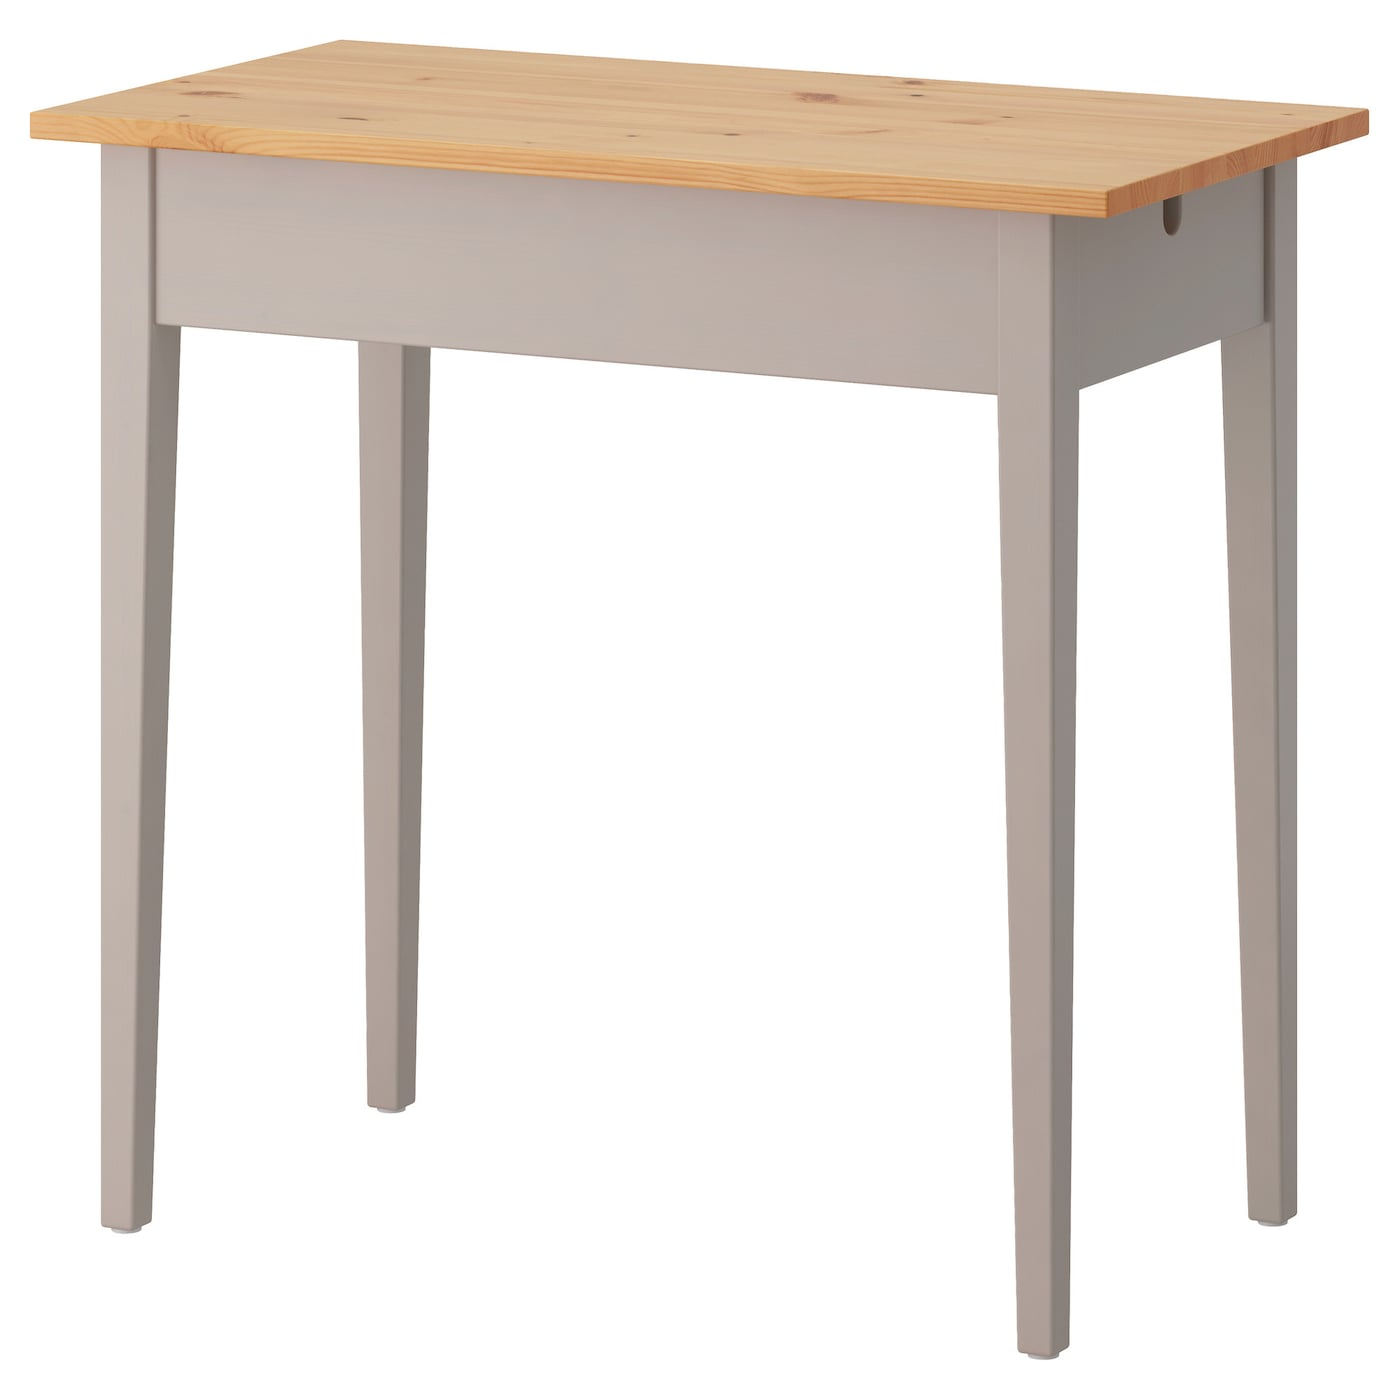 IKEA NORRÅSEN laptop table Solid wood is a durable natural material.